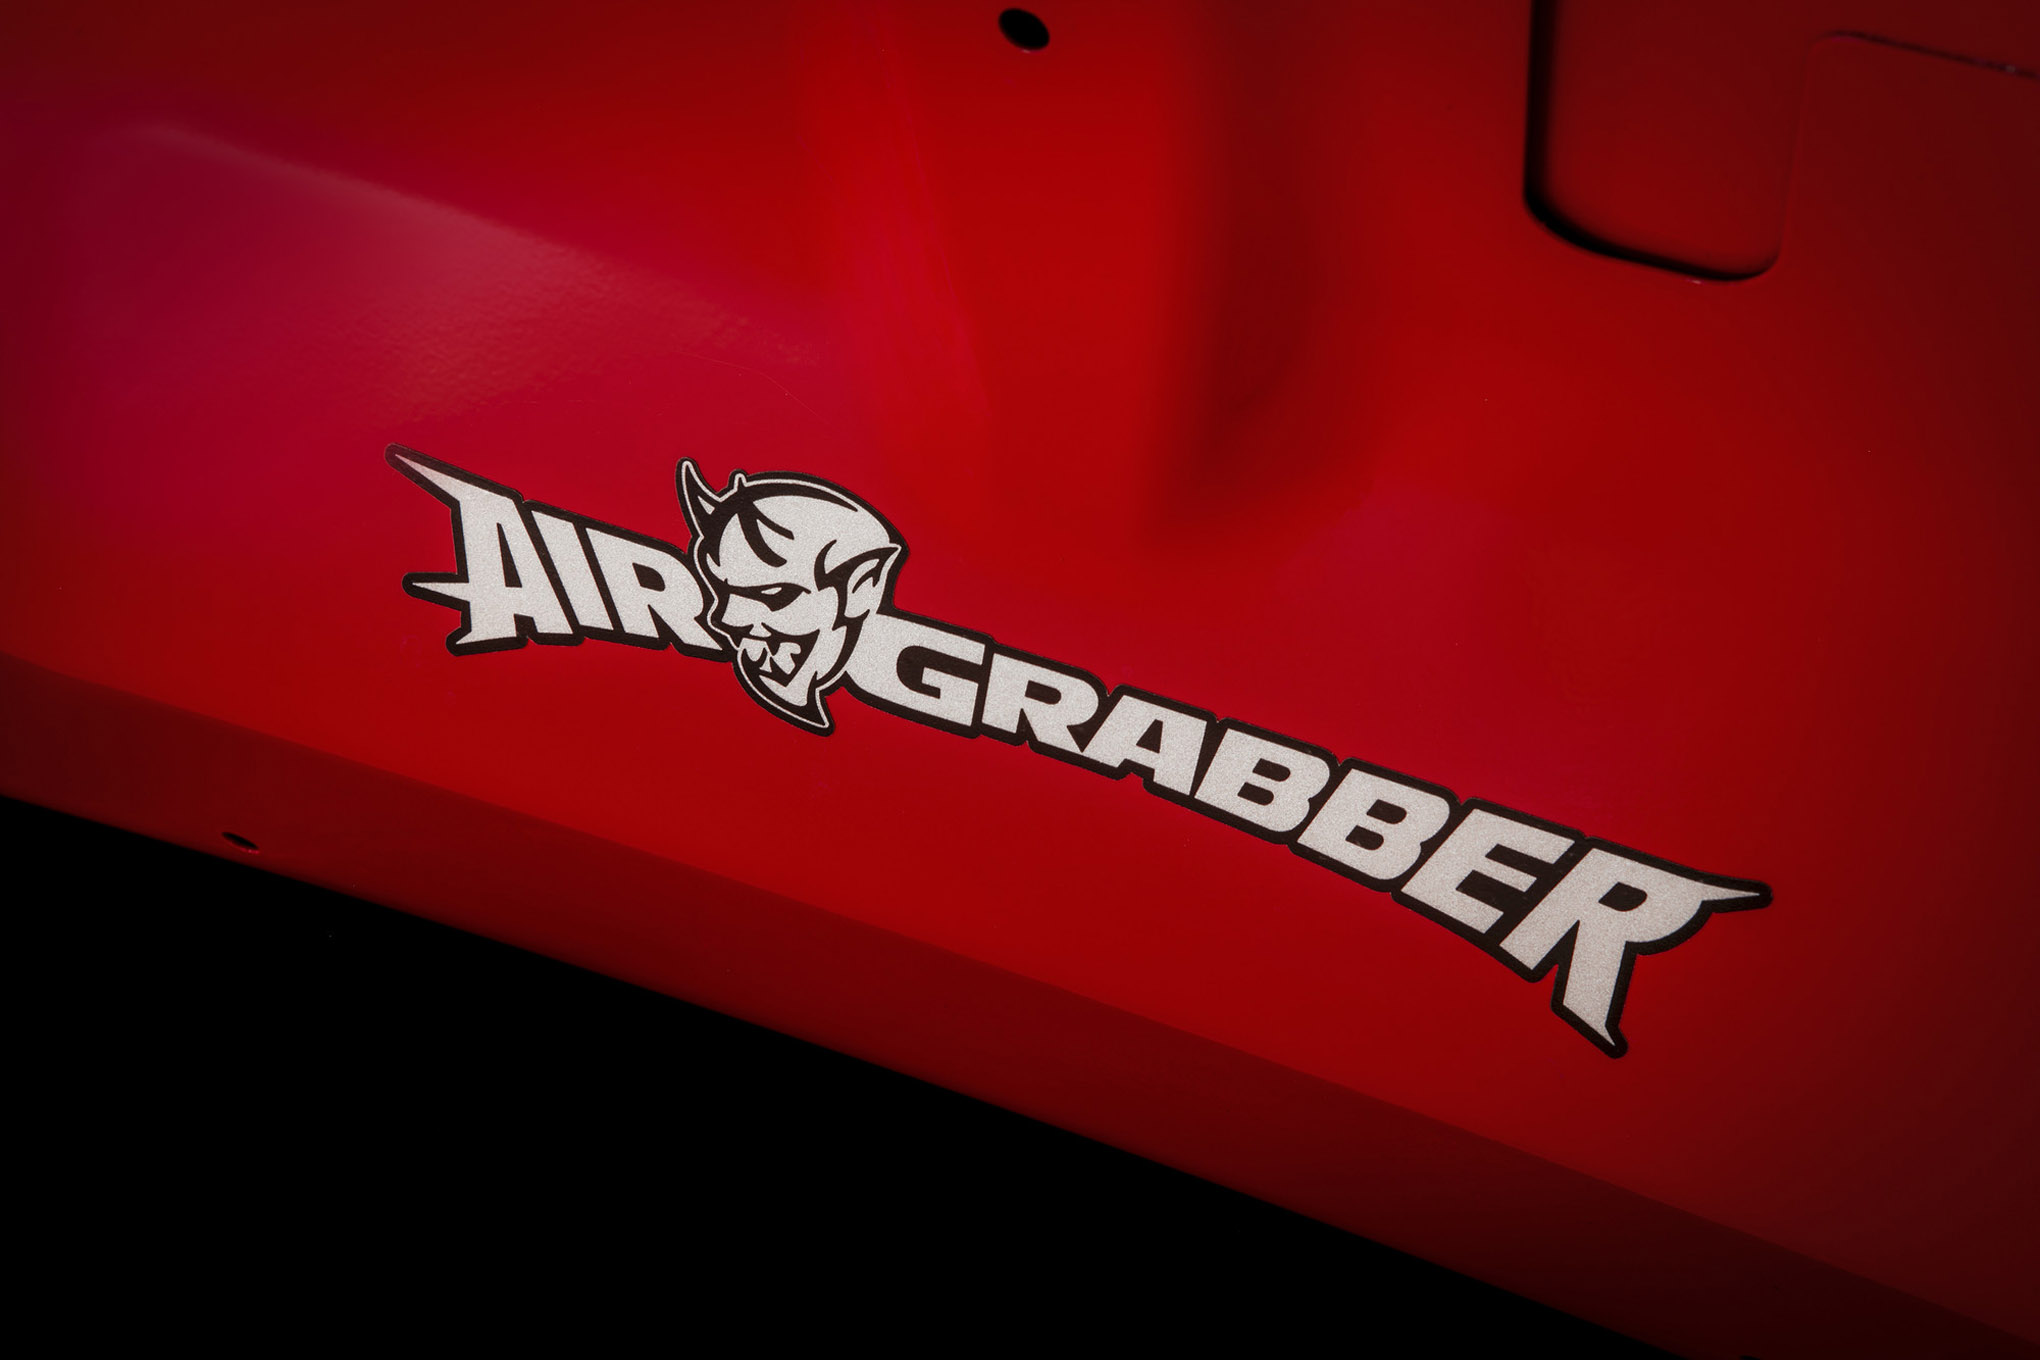 The Air Grabber logo on the underside of the hood of the 2018 Do